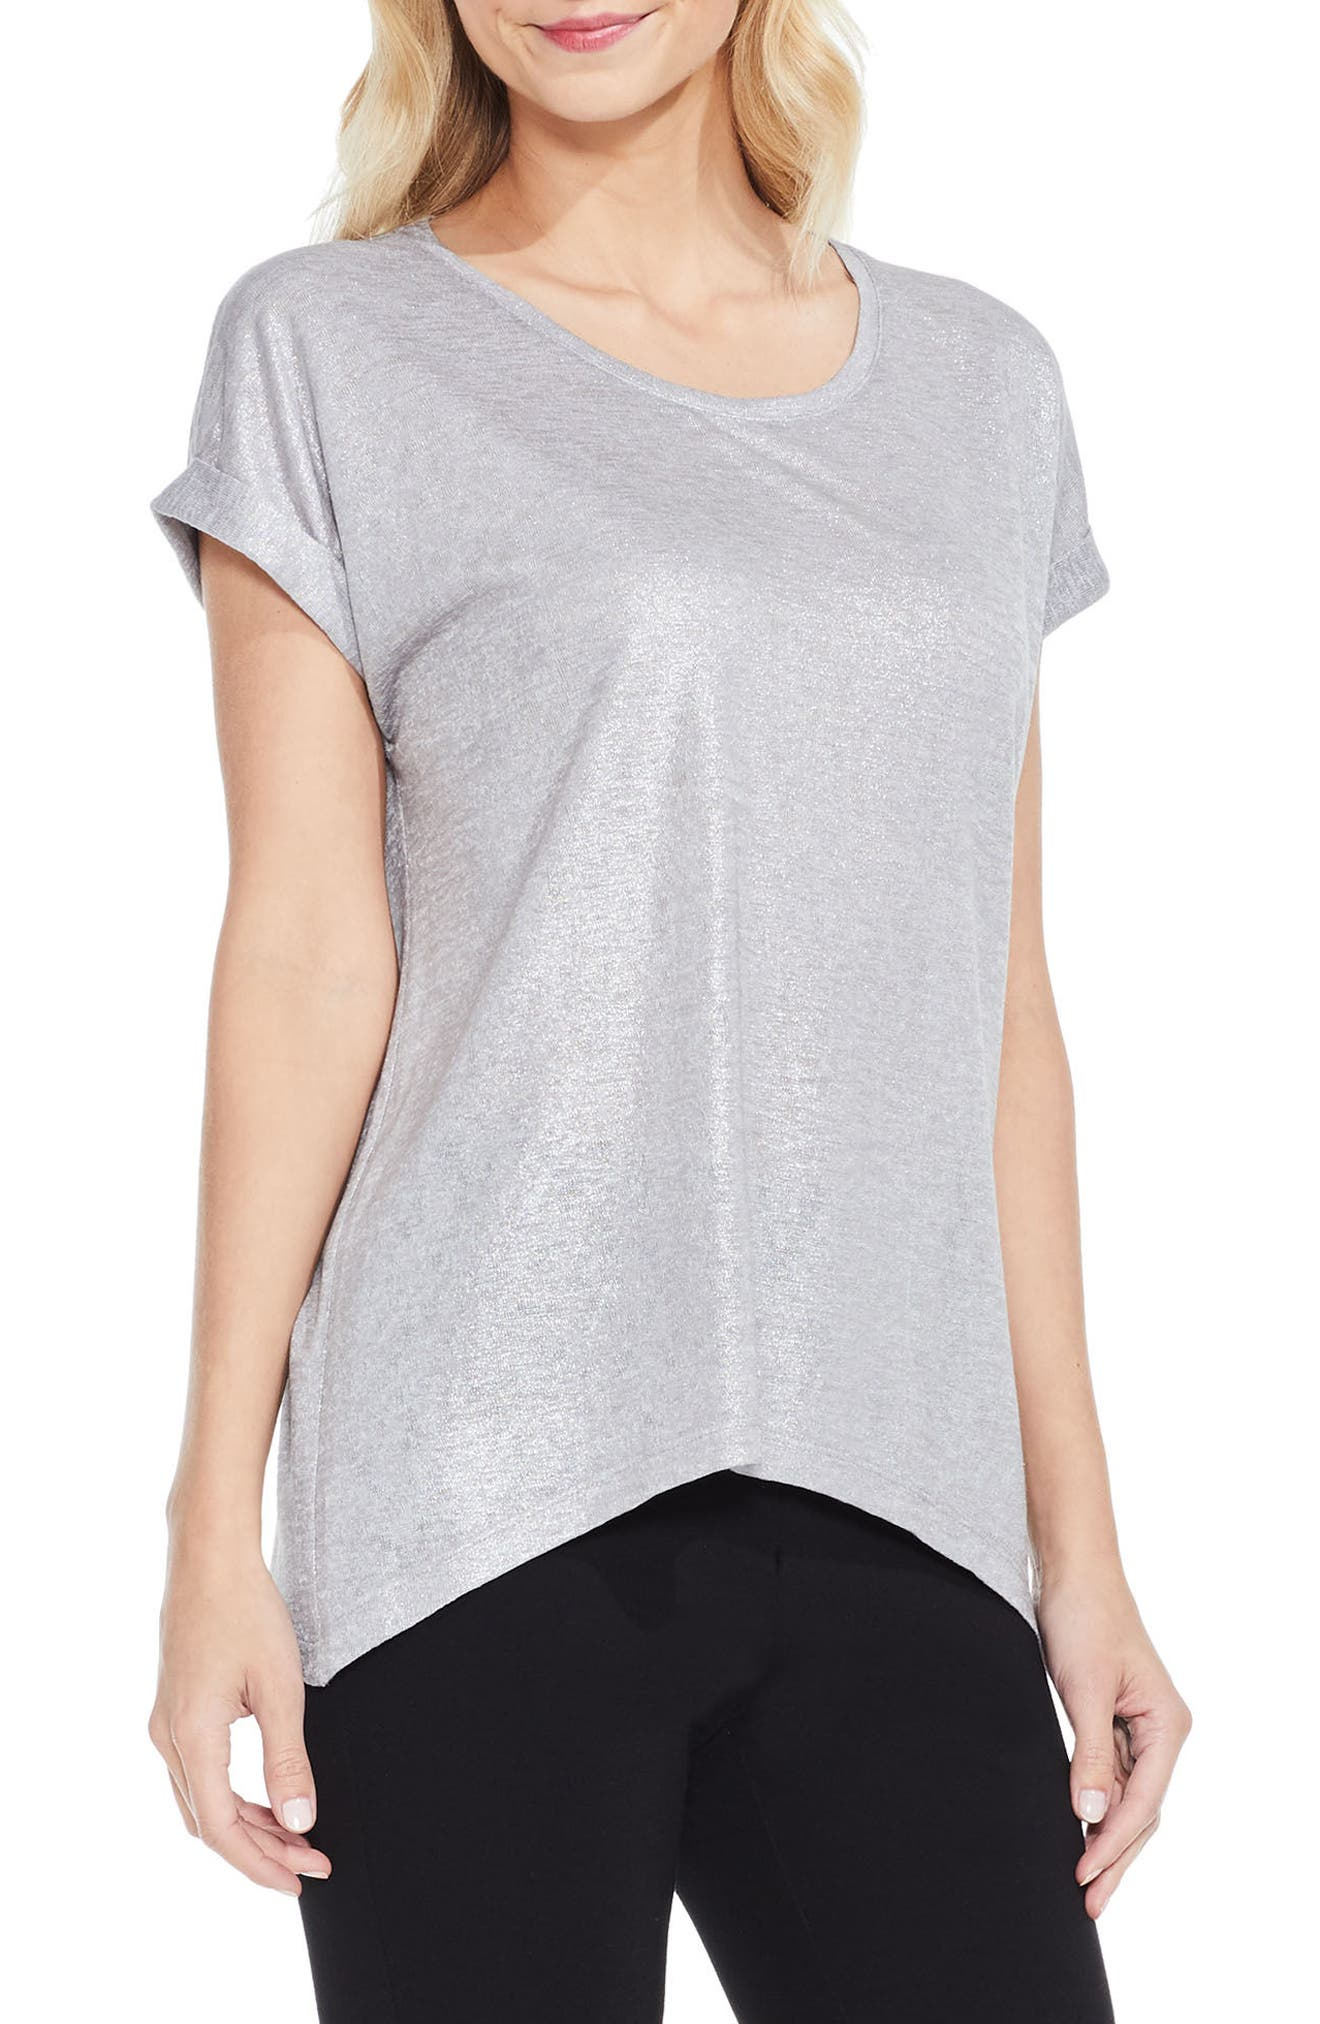 Main Image - Two by Vince Camuto Foiled Knit Tee